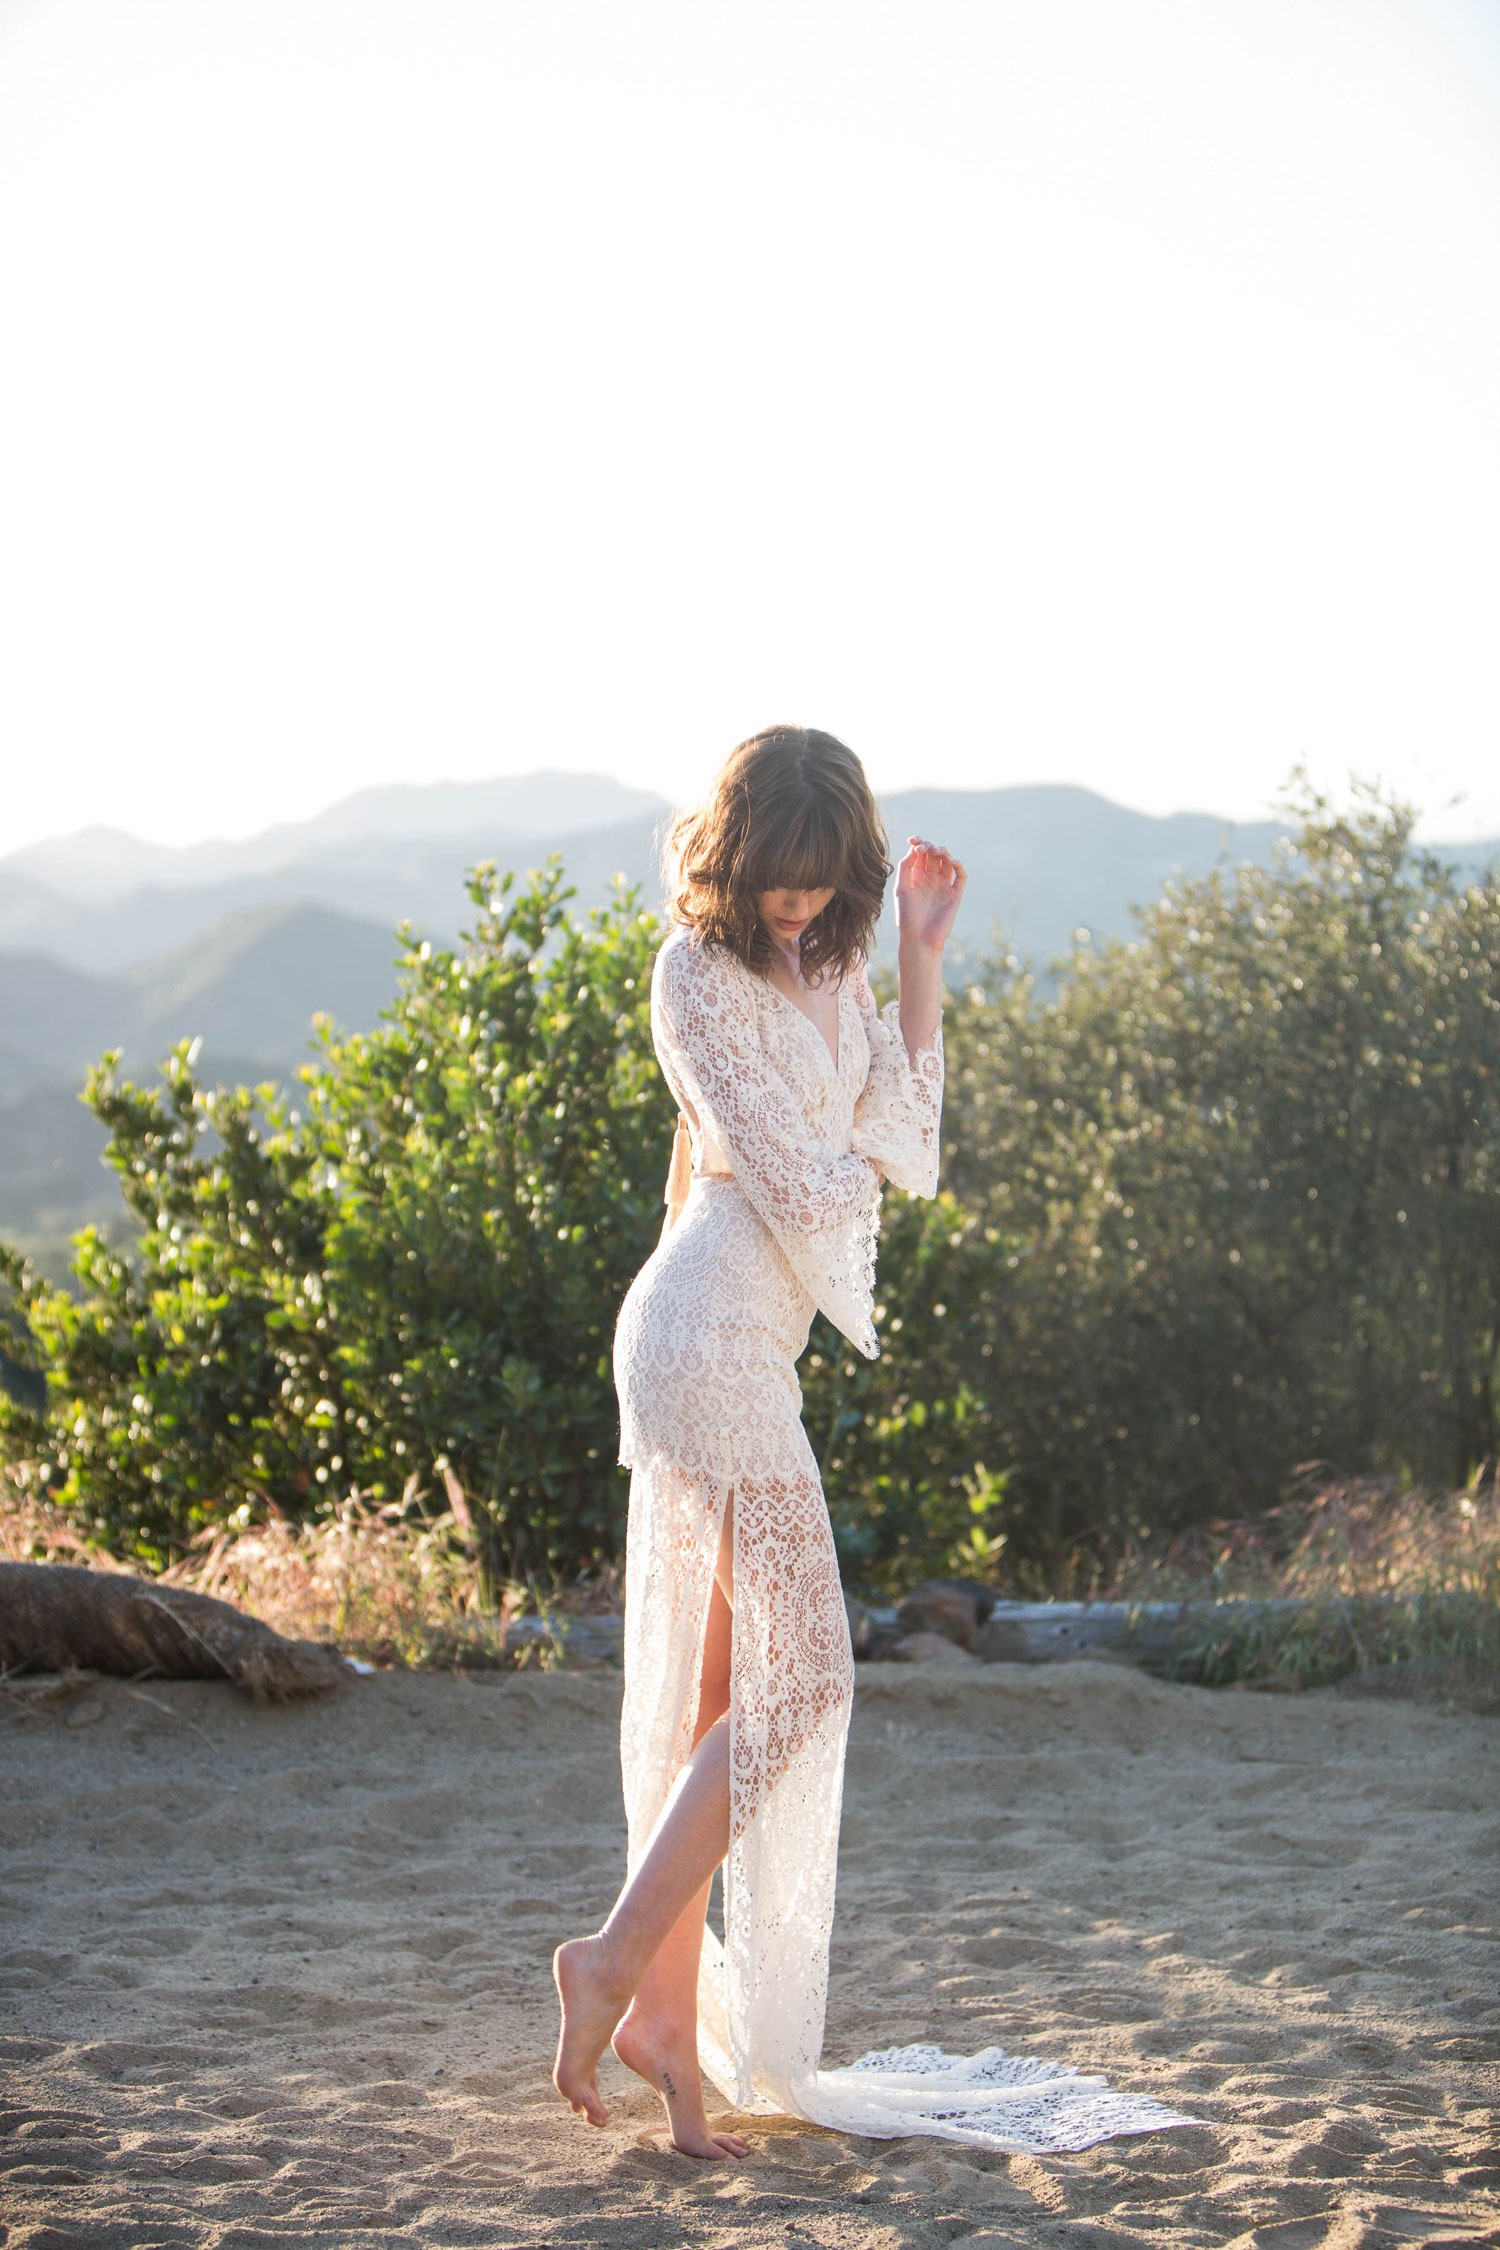 Claire Pettibone Romantique stylized shoot in Malibu California Dreamin' collection Coachella wedding dress